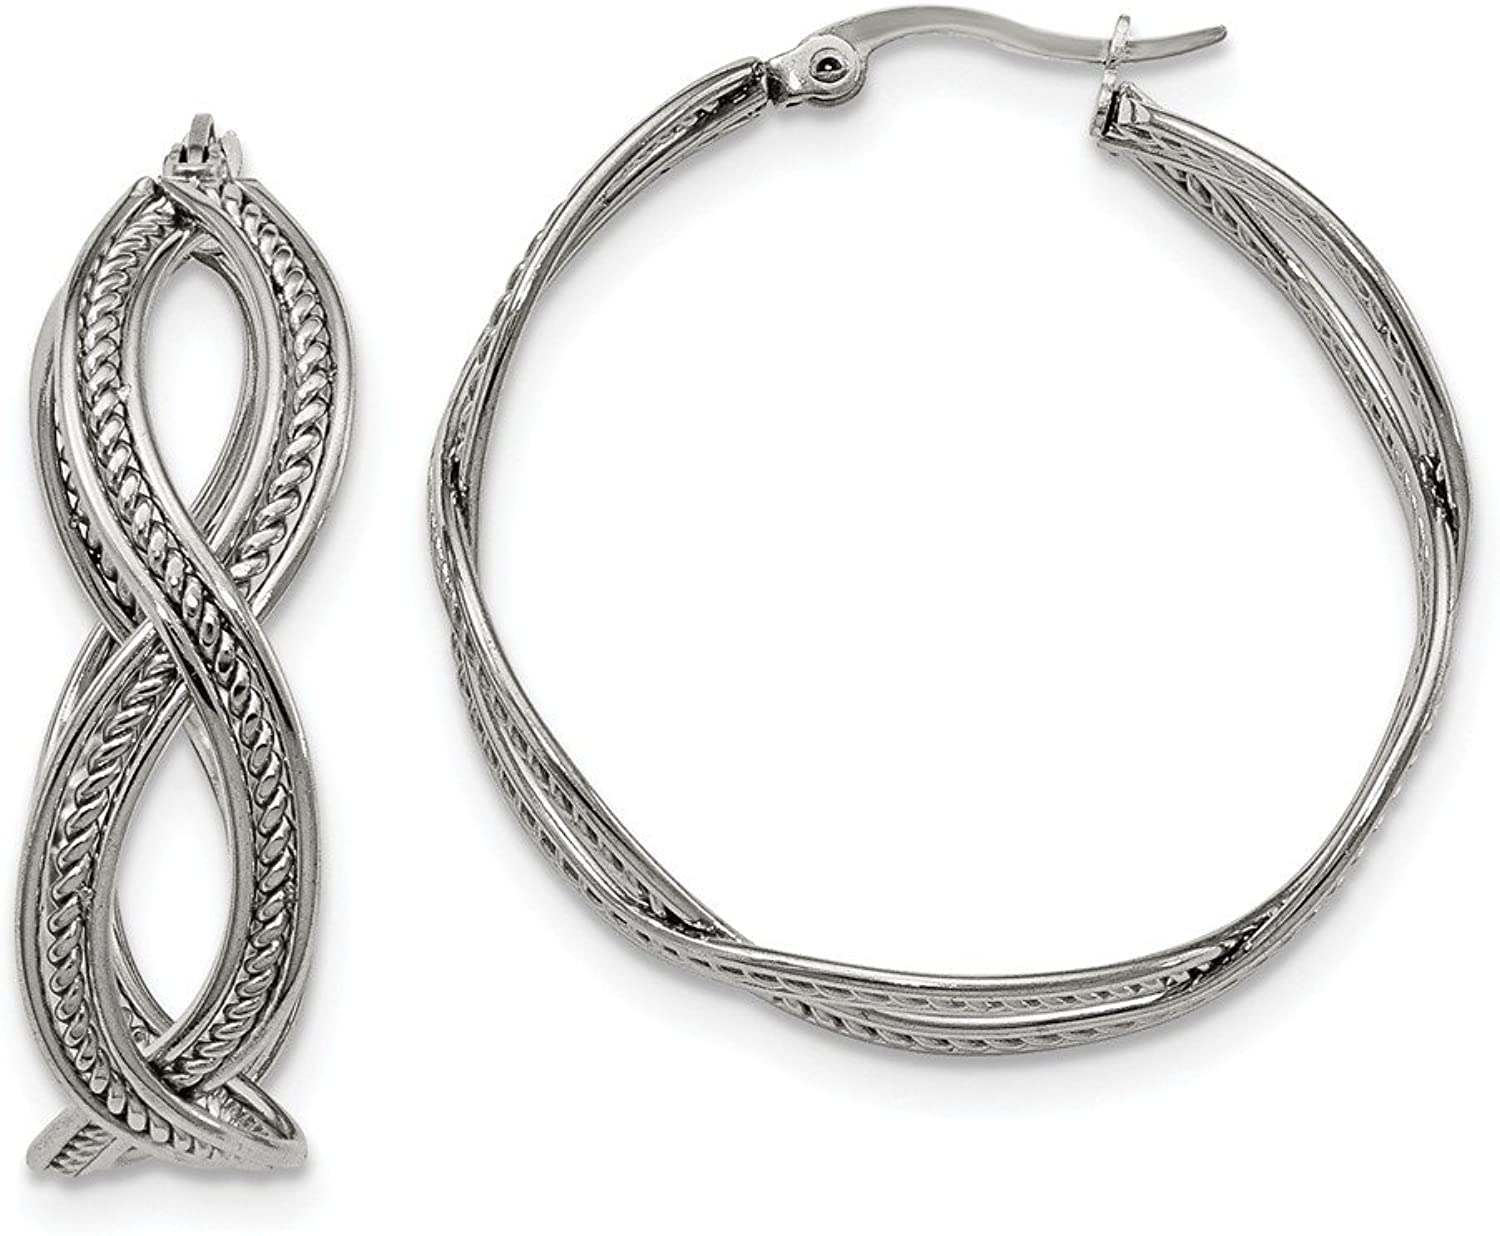 Beautiful Stainless Steel 35mm Twisted Hoop Earrings